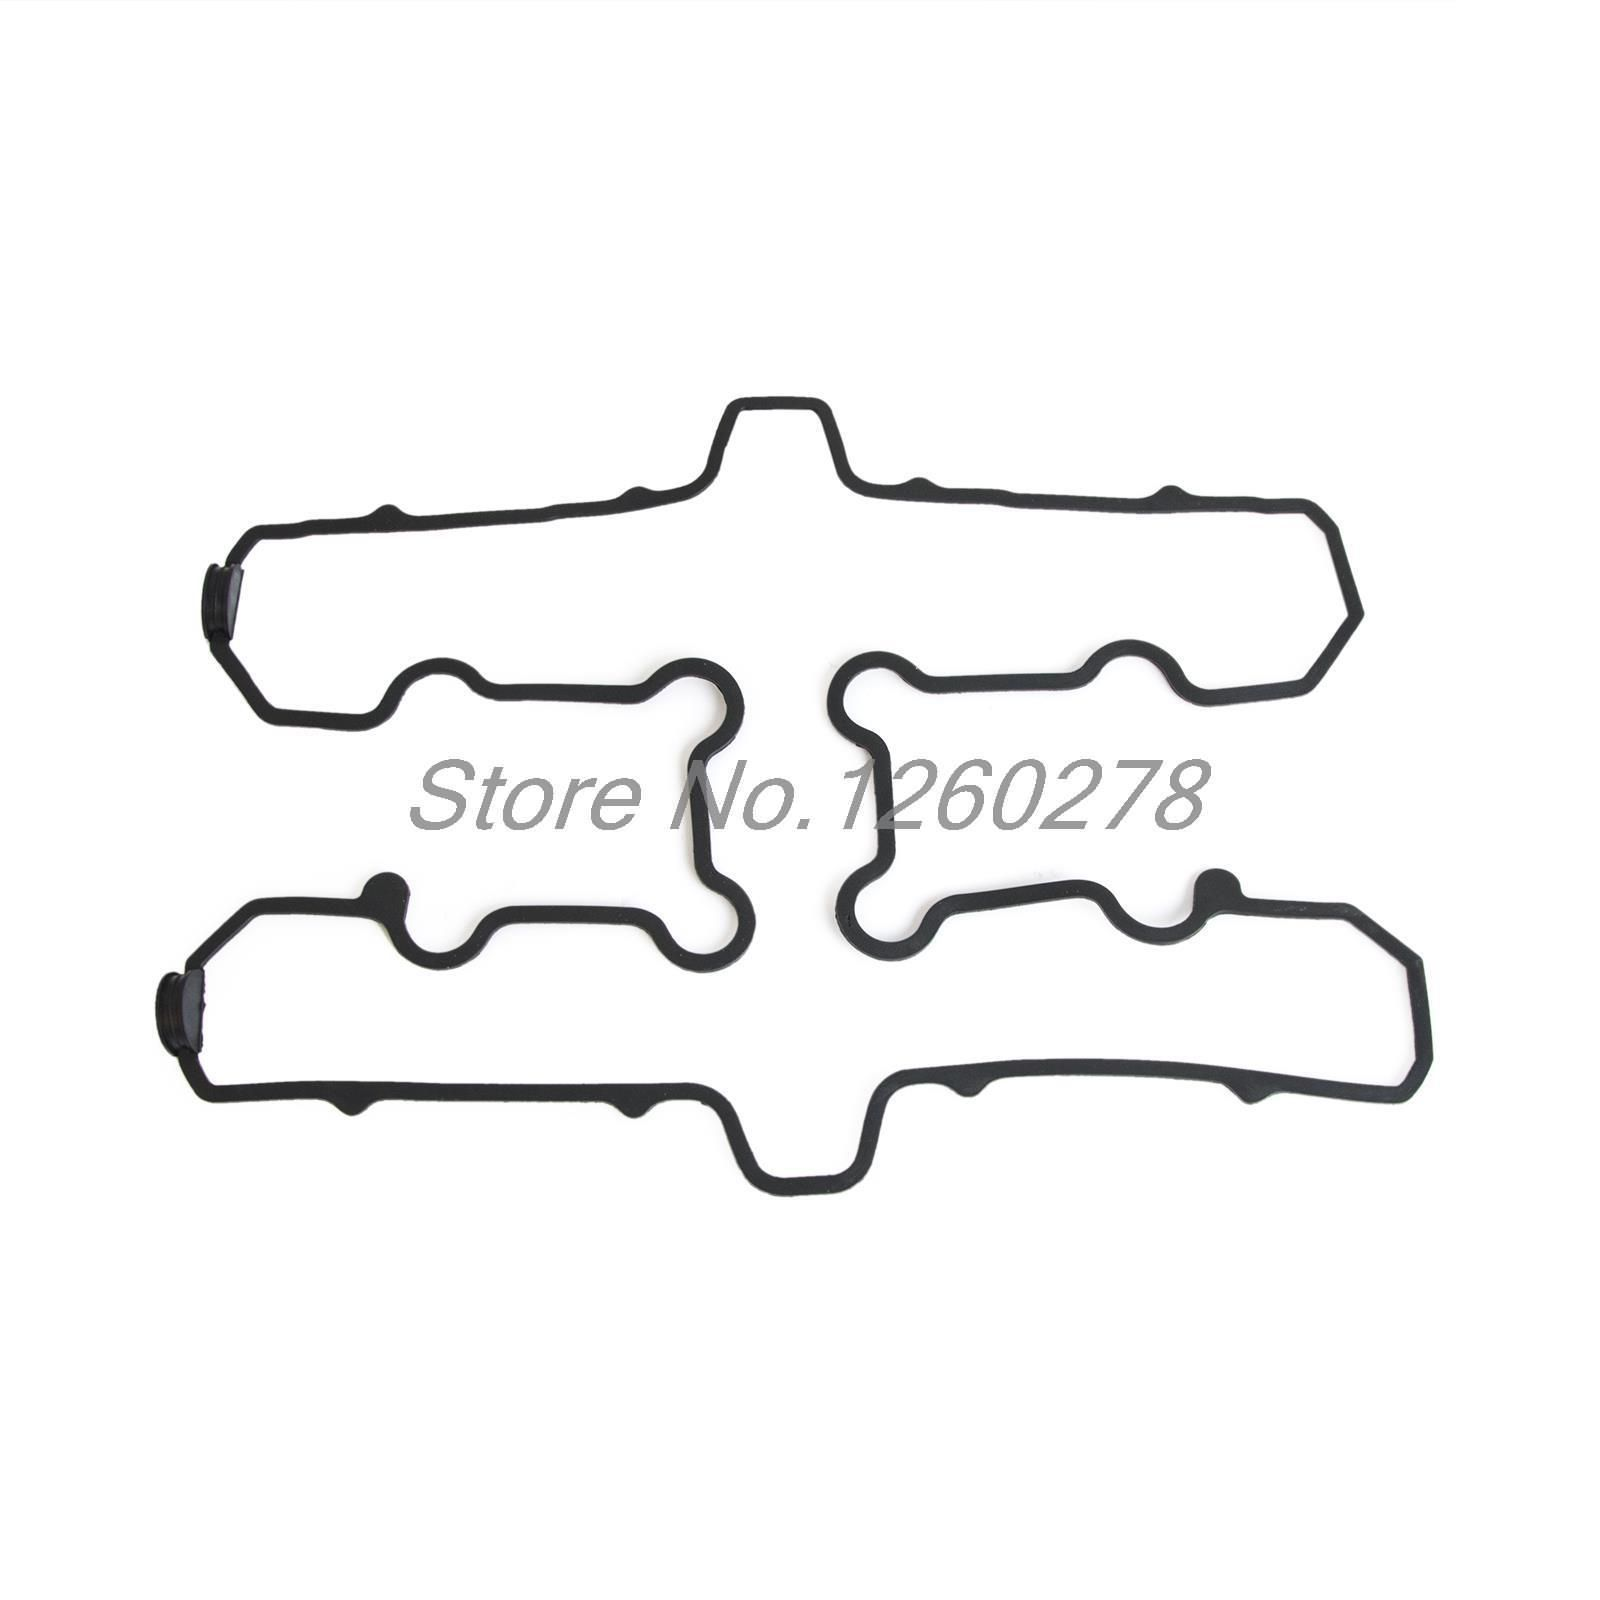 Motorcycle Parts Cylinder Head Cover Gasket  for Yamaha  FJ1100 FJ1200 XJR1200 XJR1300 XJR 1200 1300 new